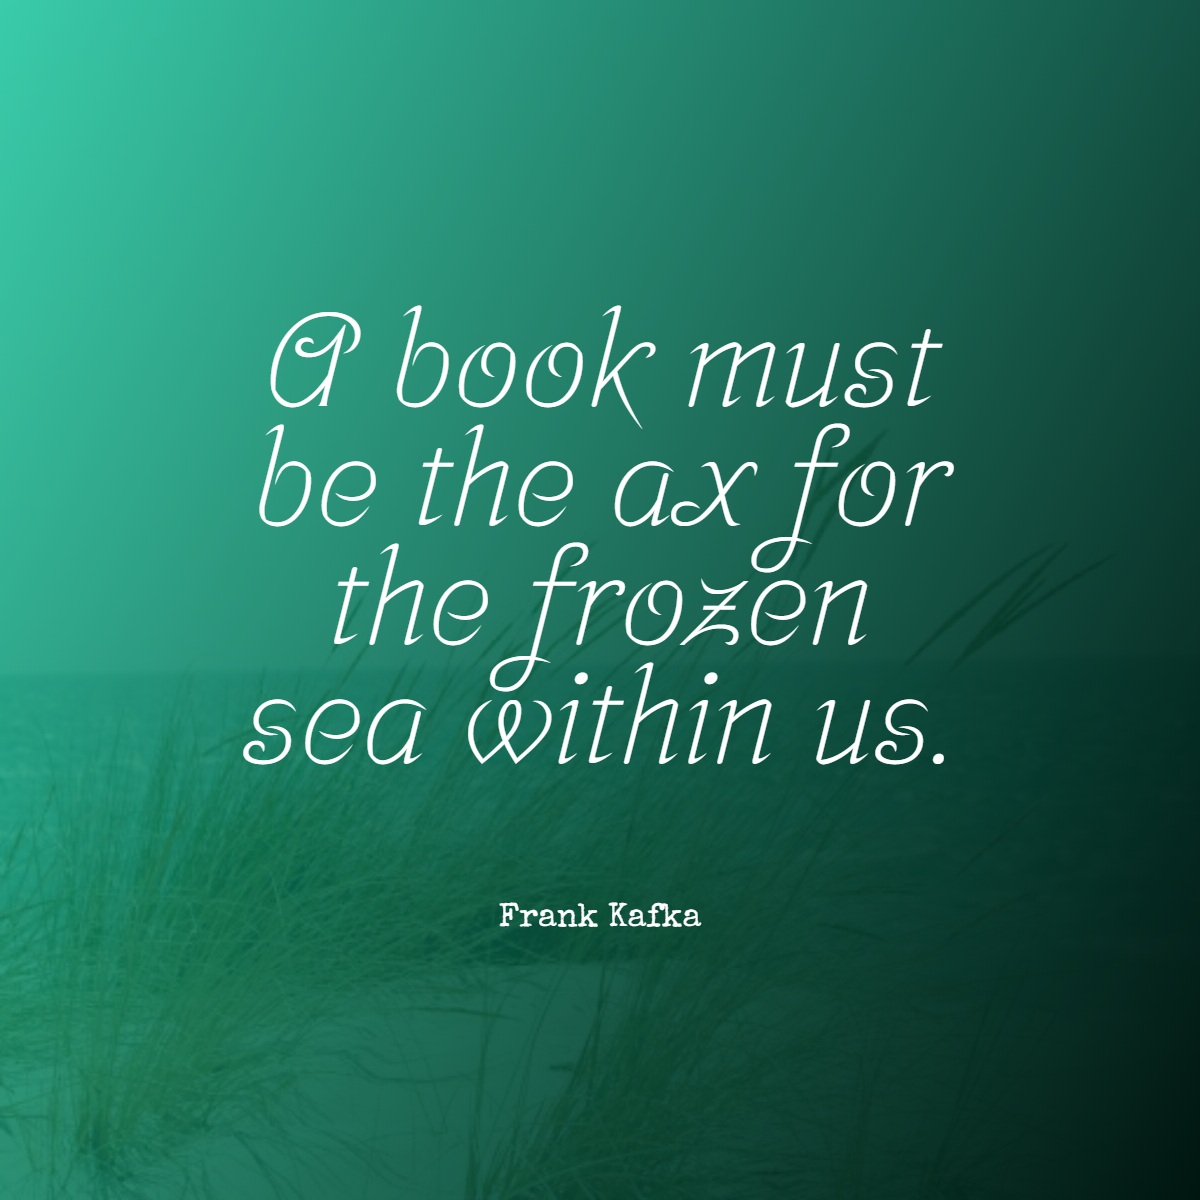 A book must be the ax for the frozen sea within us.